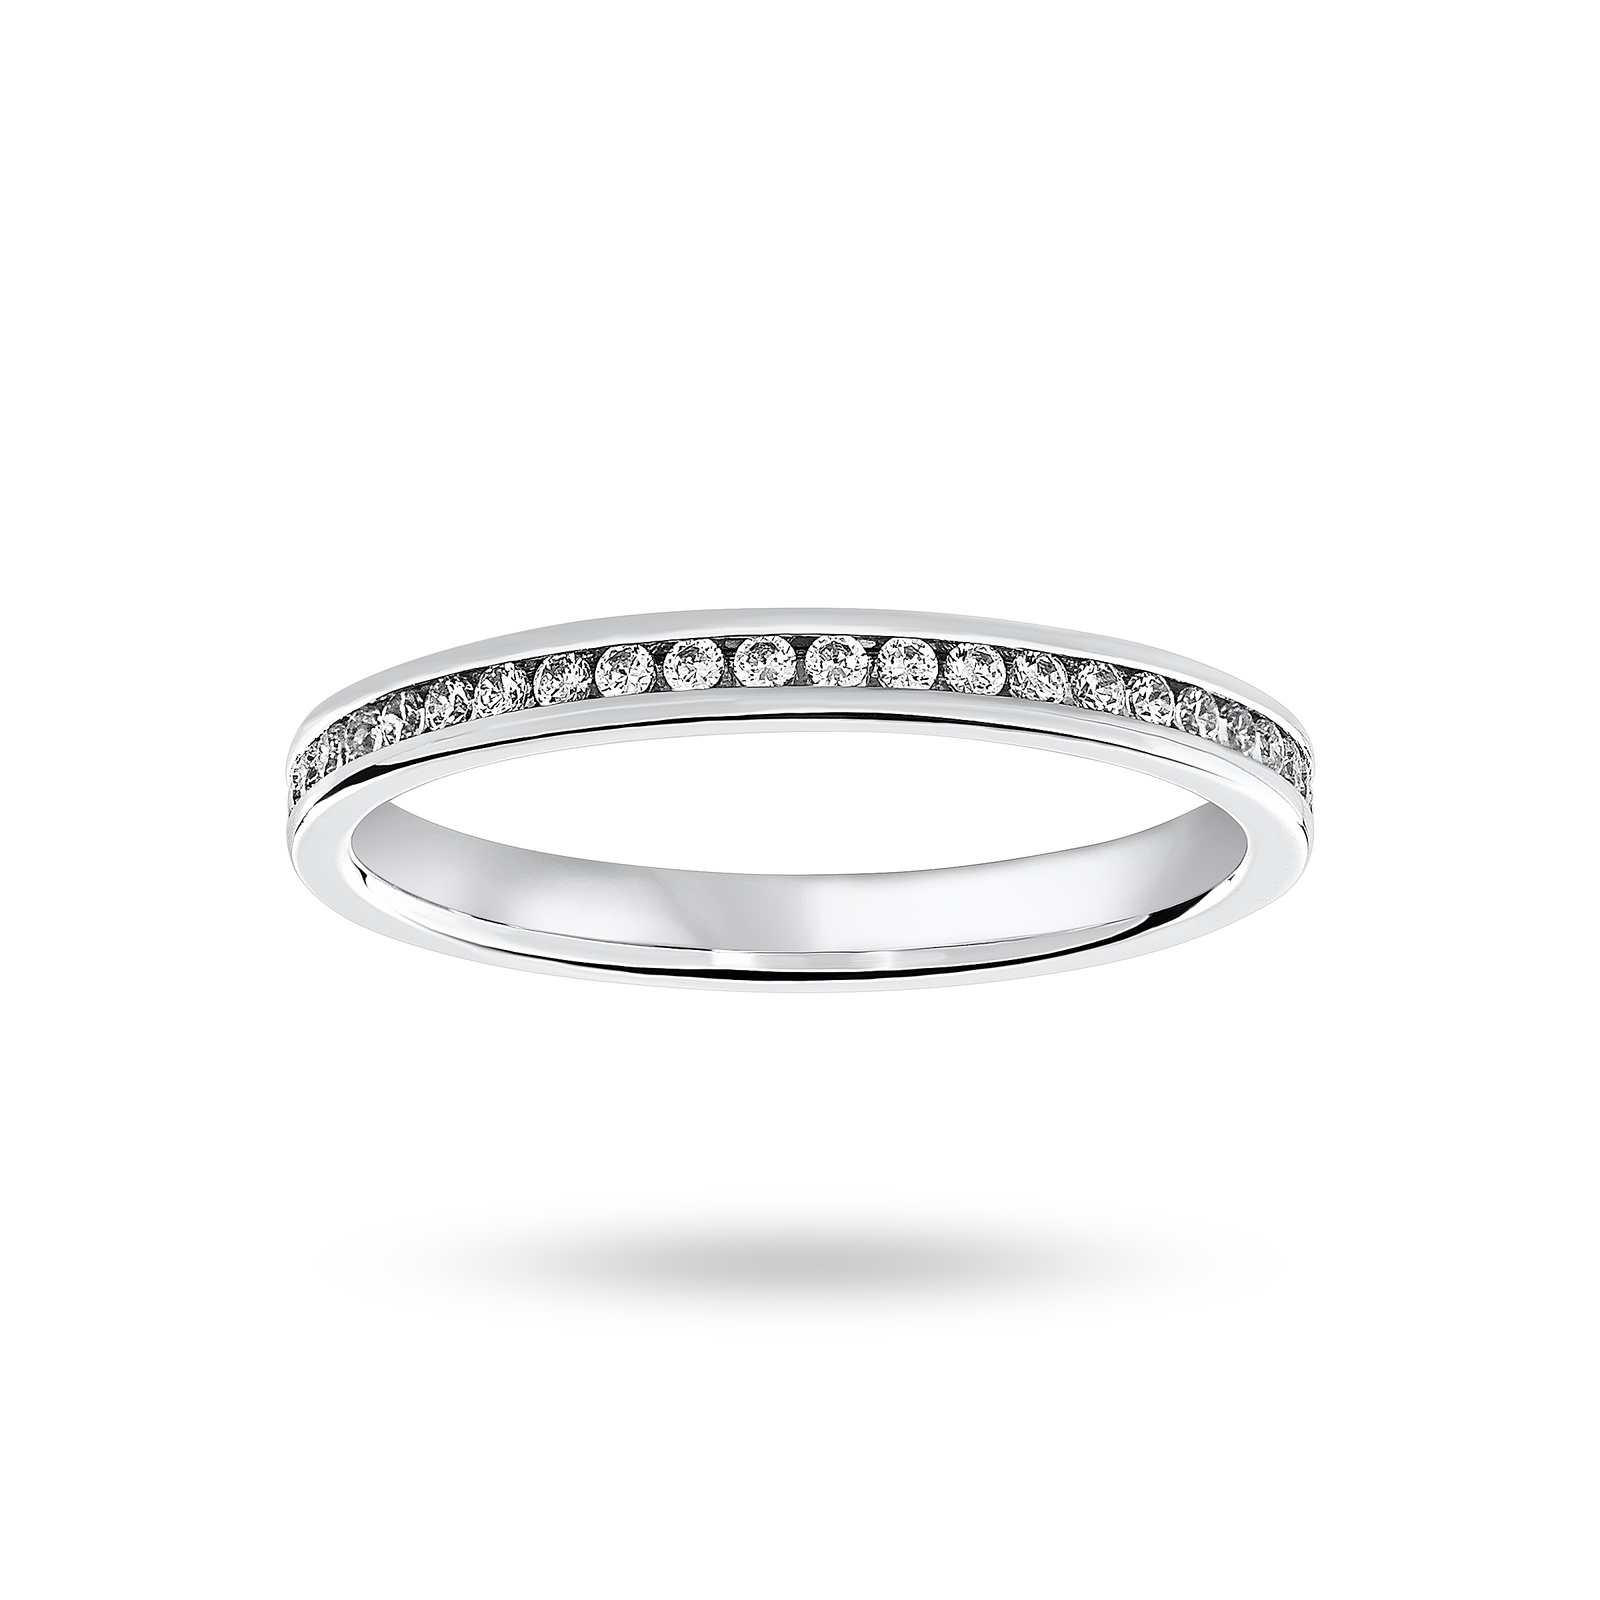 Platinum 0.33 Carat Brilliant Cut Channel Set Full Eternity Ring